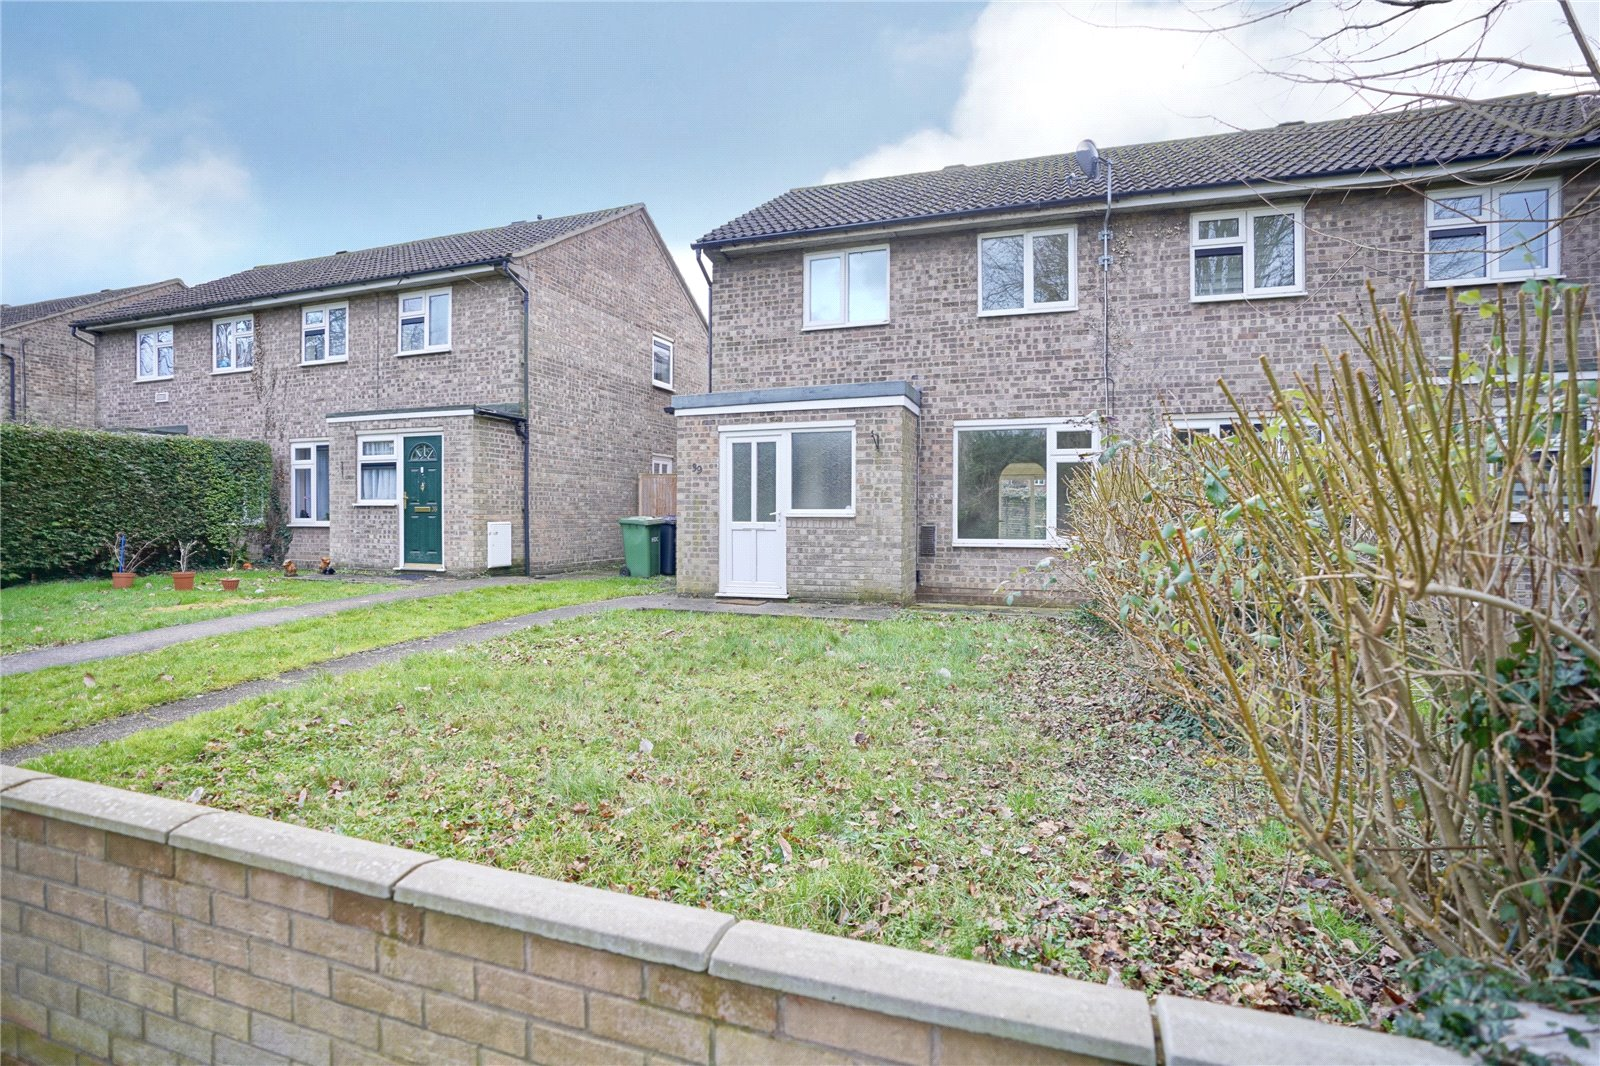 3 bed house for sale in Godmanchester, PE29 2BH  - Property Image 1